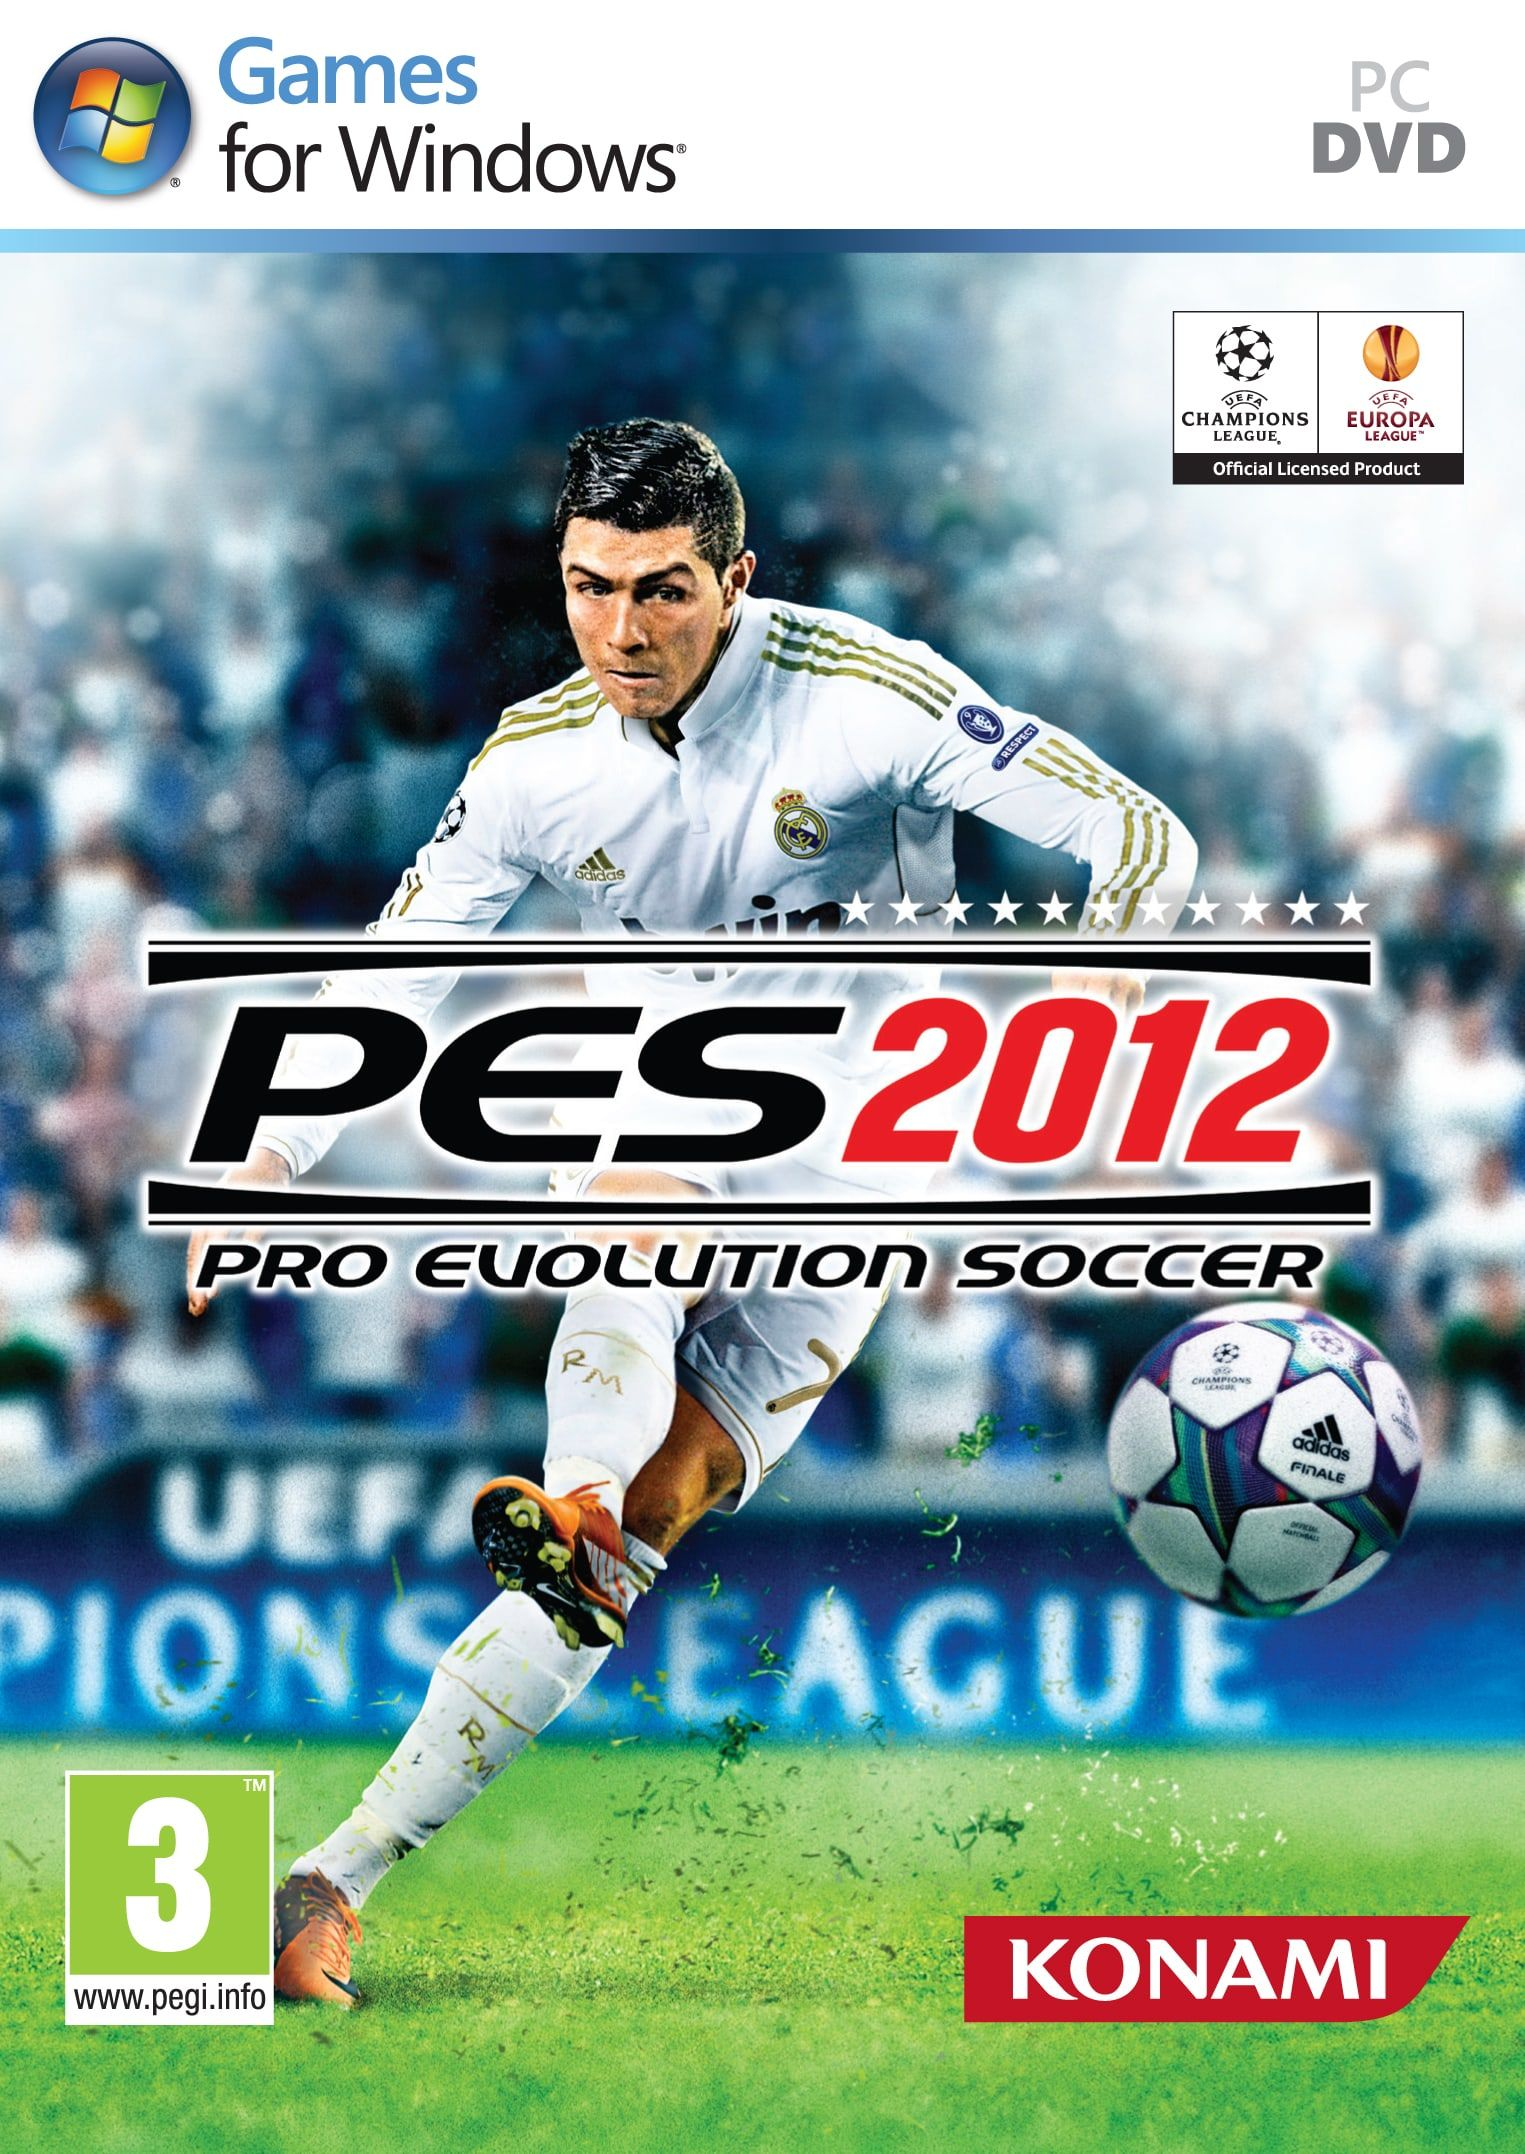 Download Gratis Pro Evolution Soccer (PES) 2012 Full Version